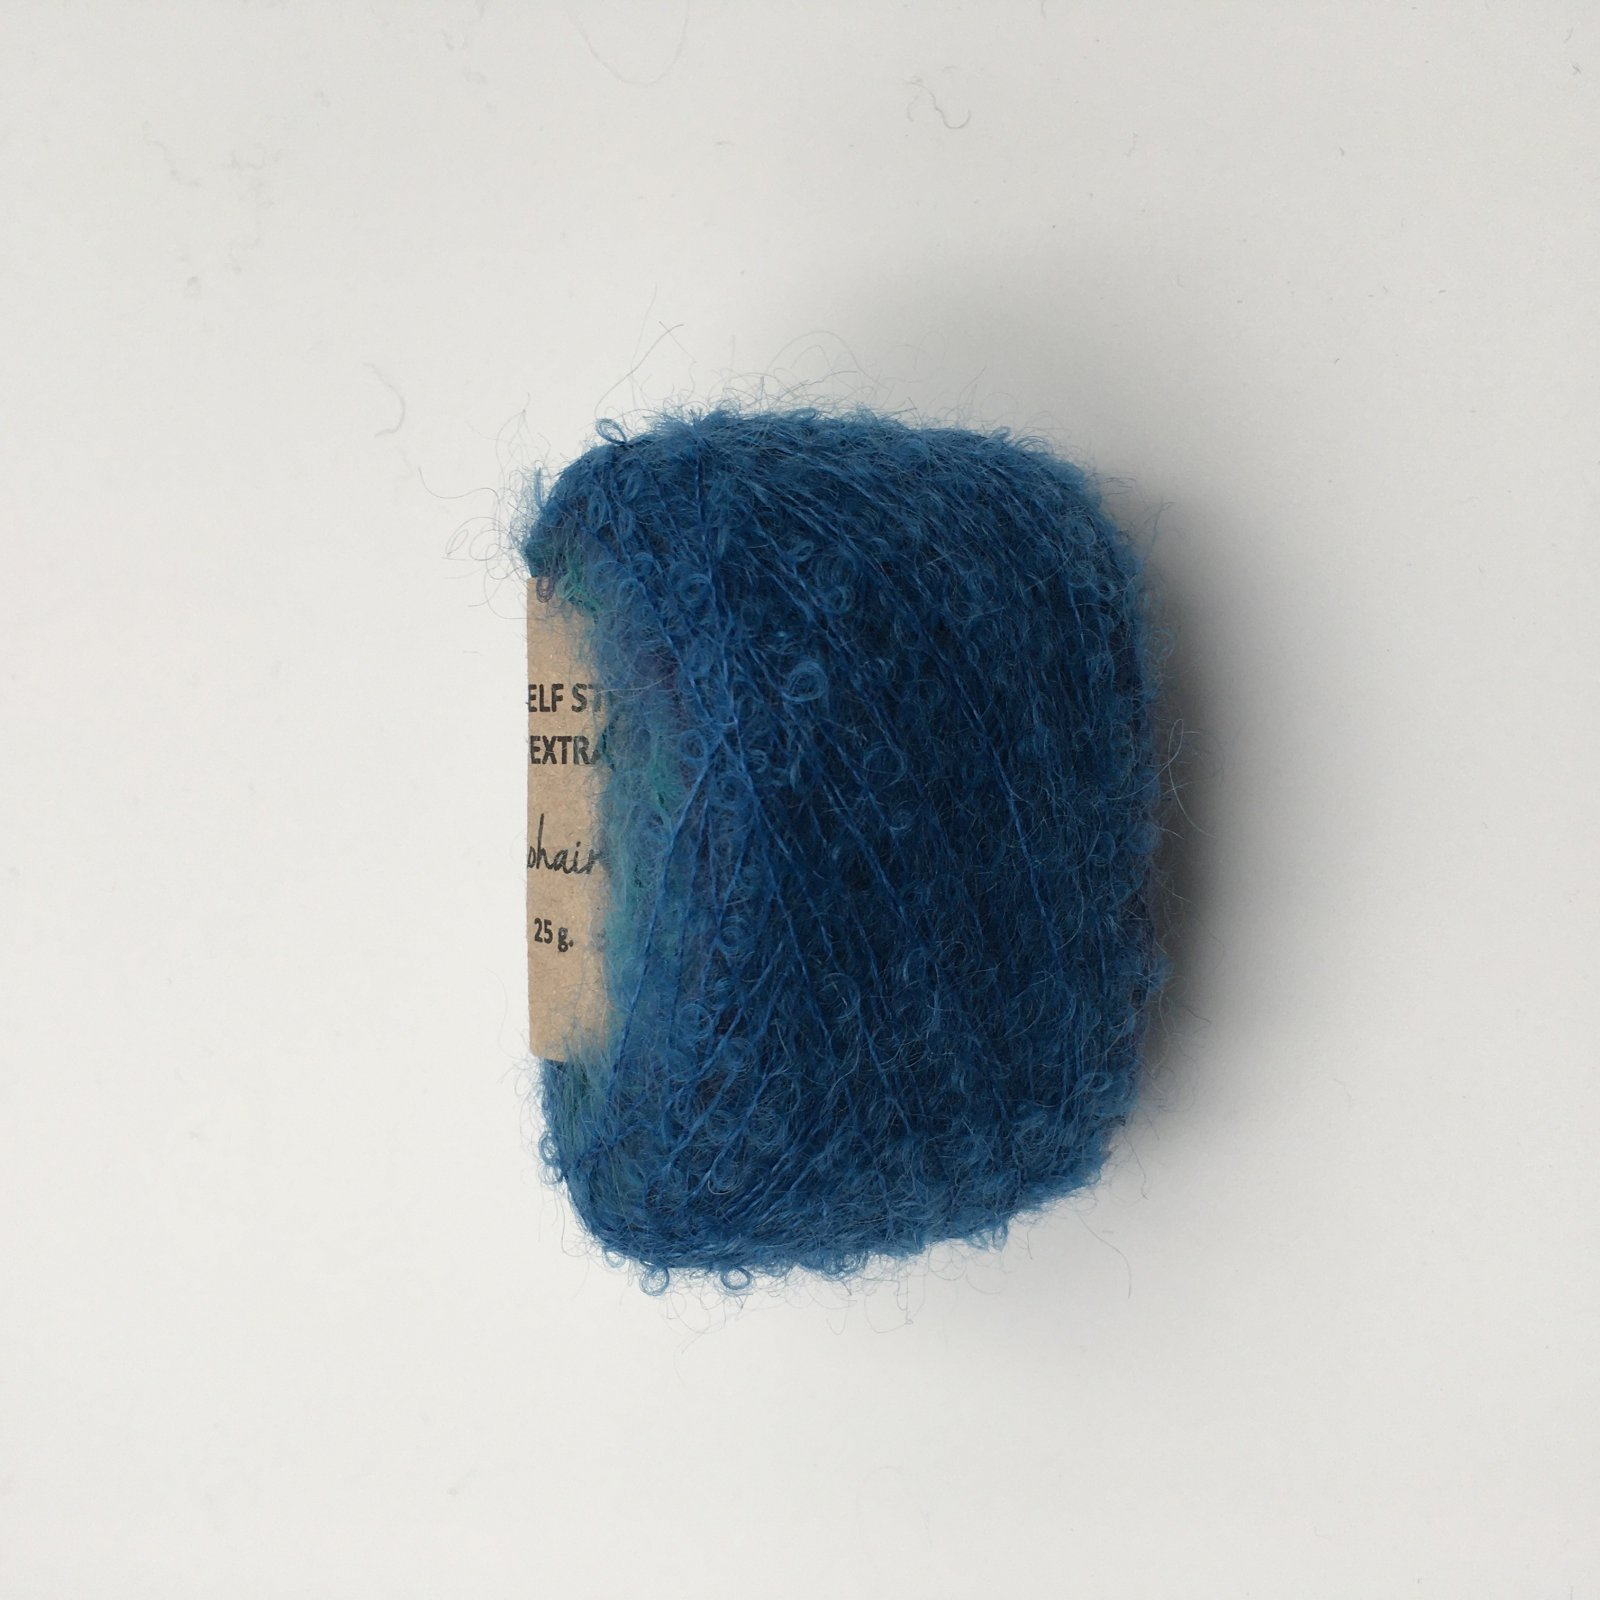 Adele's Mohair Self Striping Extra Fine - Underwater